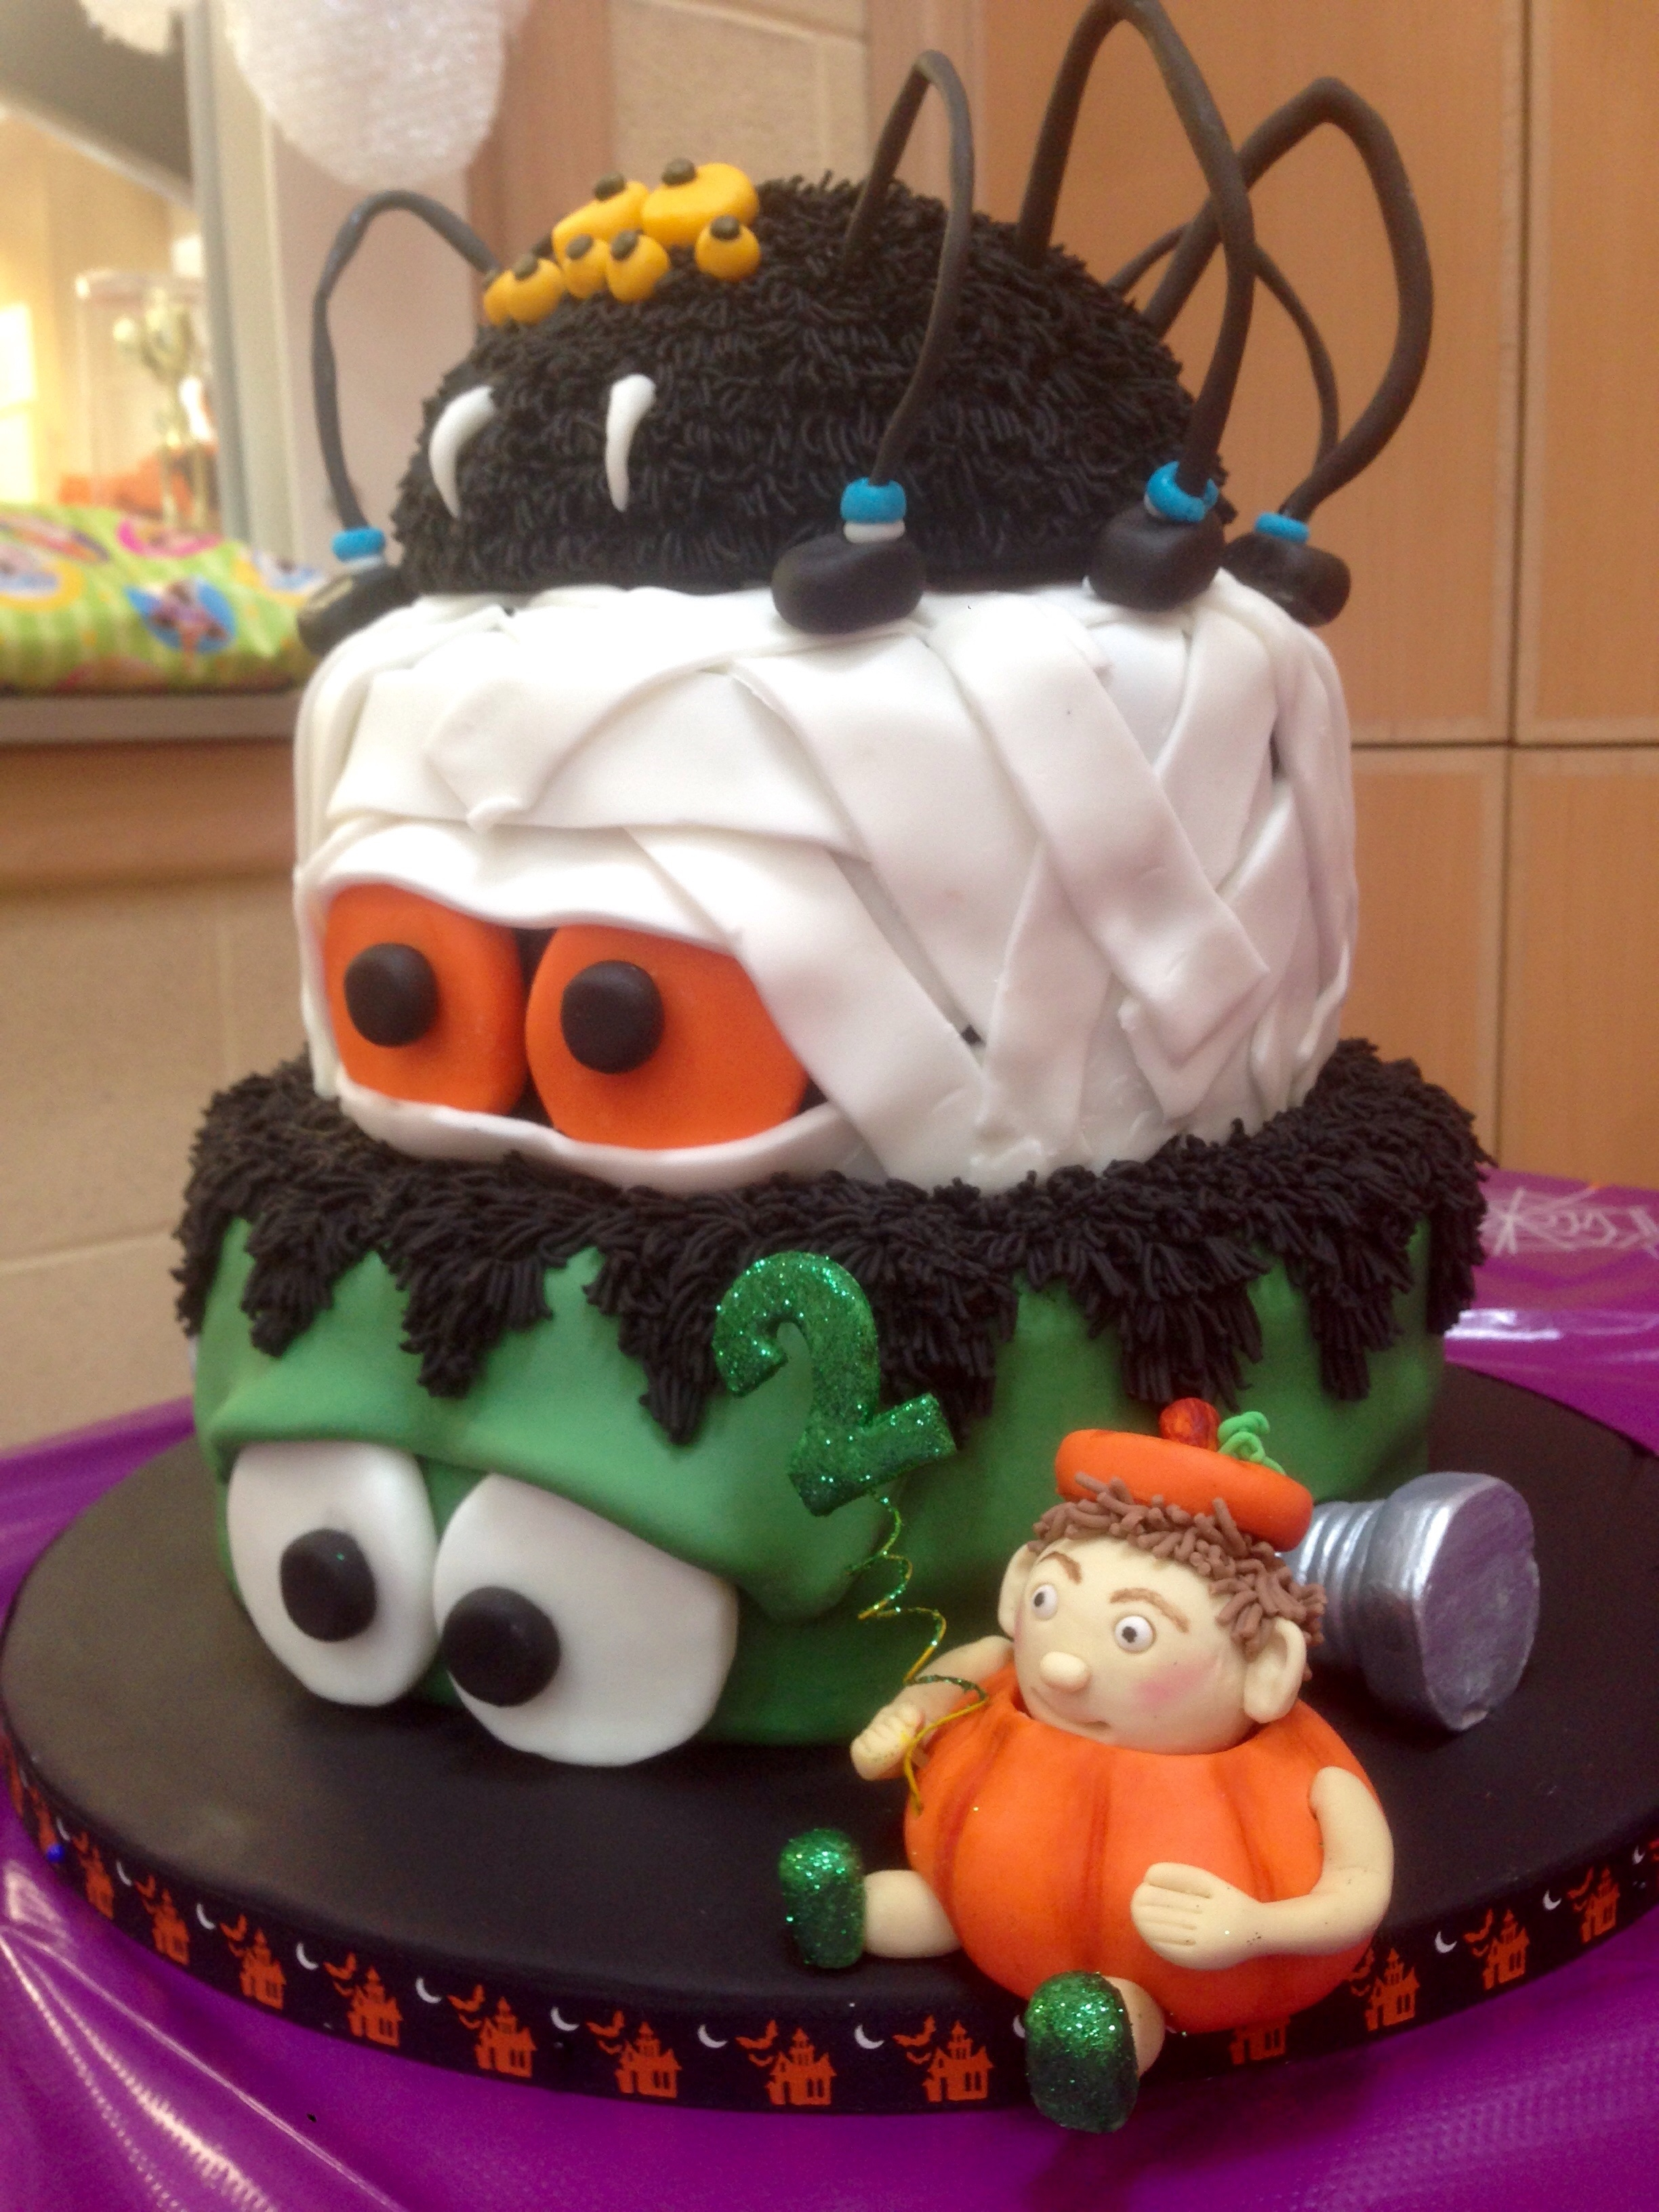 Halloween Themed Birthday Cake For My Nephews 2Nd Birthday The